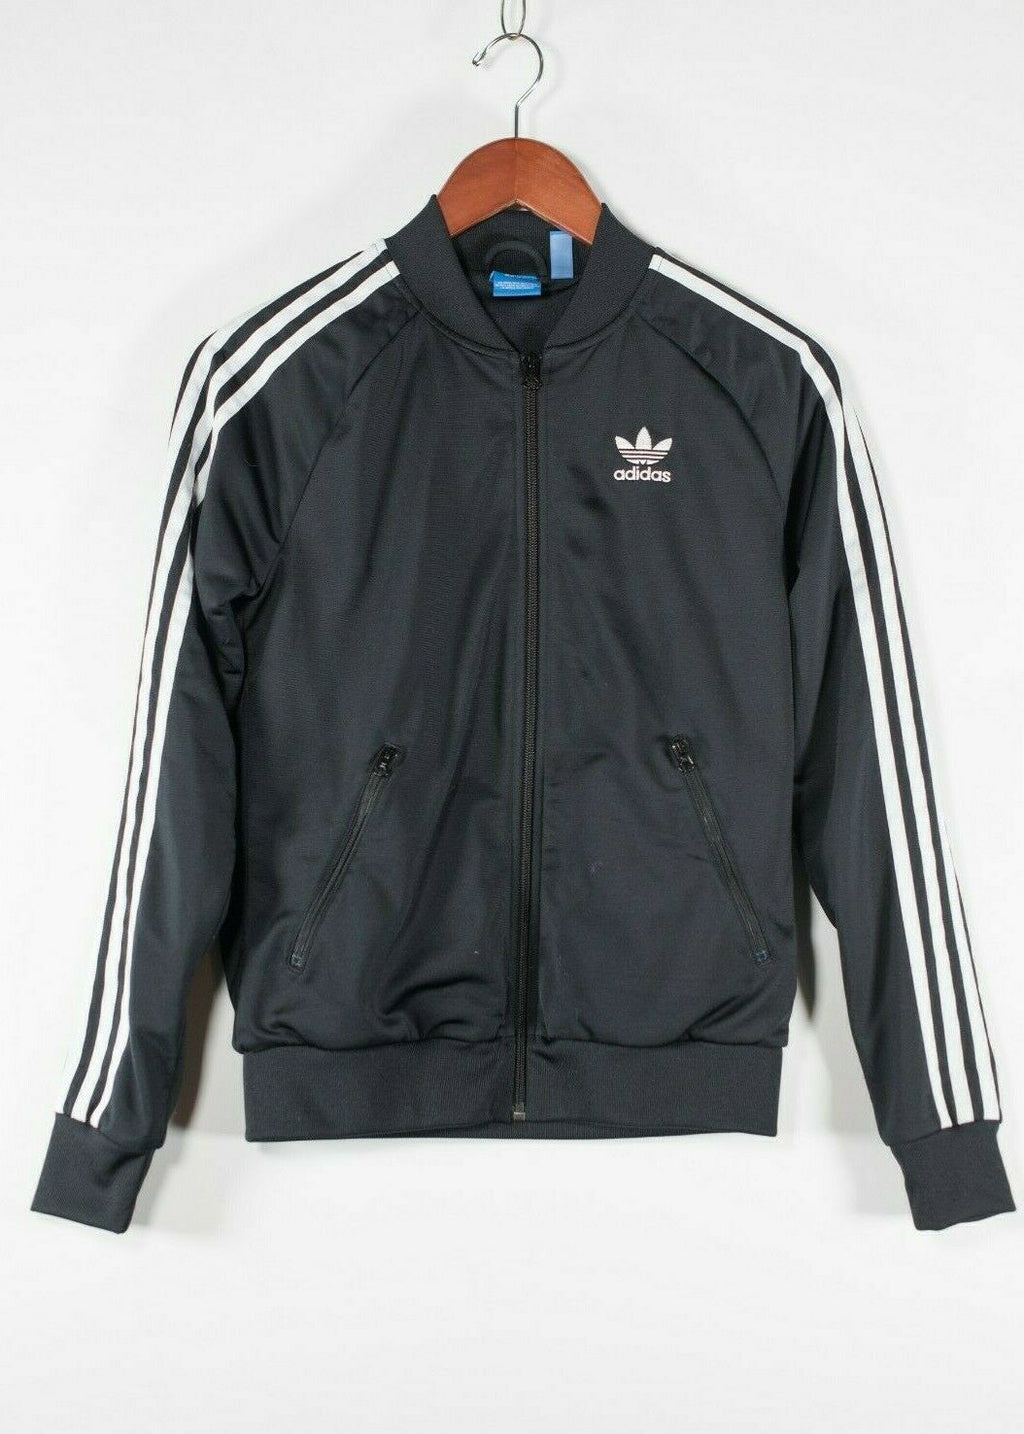 Adidas Originals Women's XS Black Track Jacket 3 Stripe Logo Zipper Pockets Coat